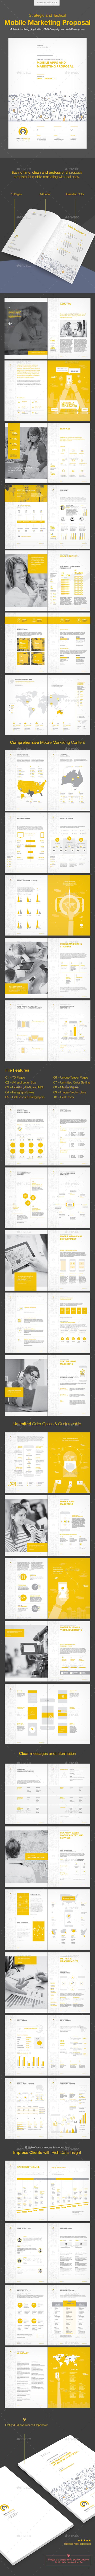 Clean Mobile Marketing Proposal Template InDesign INDD. Download ...